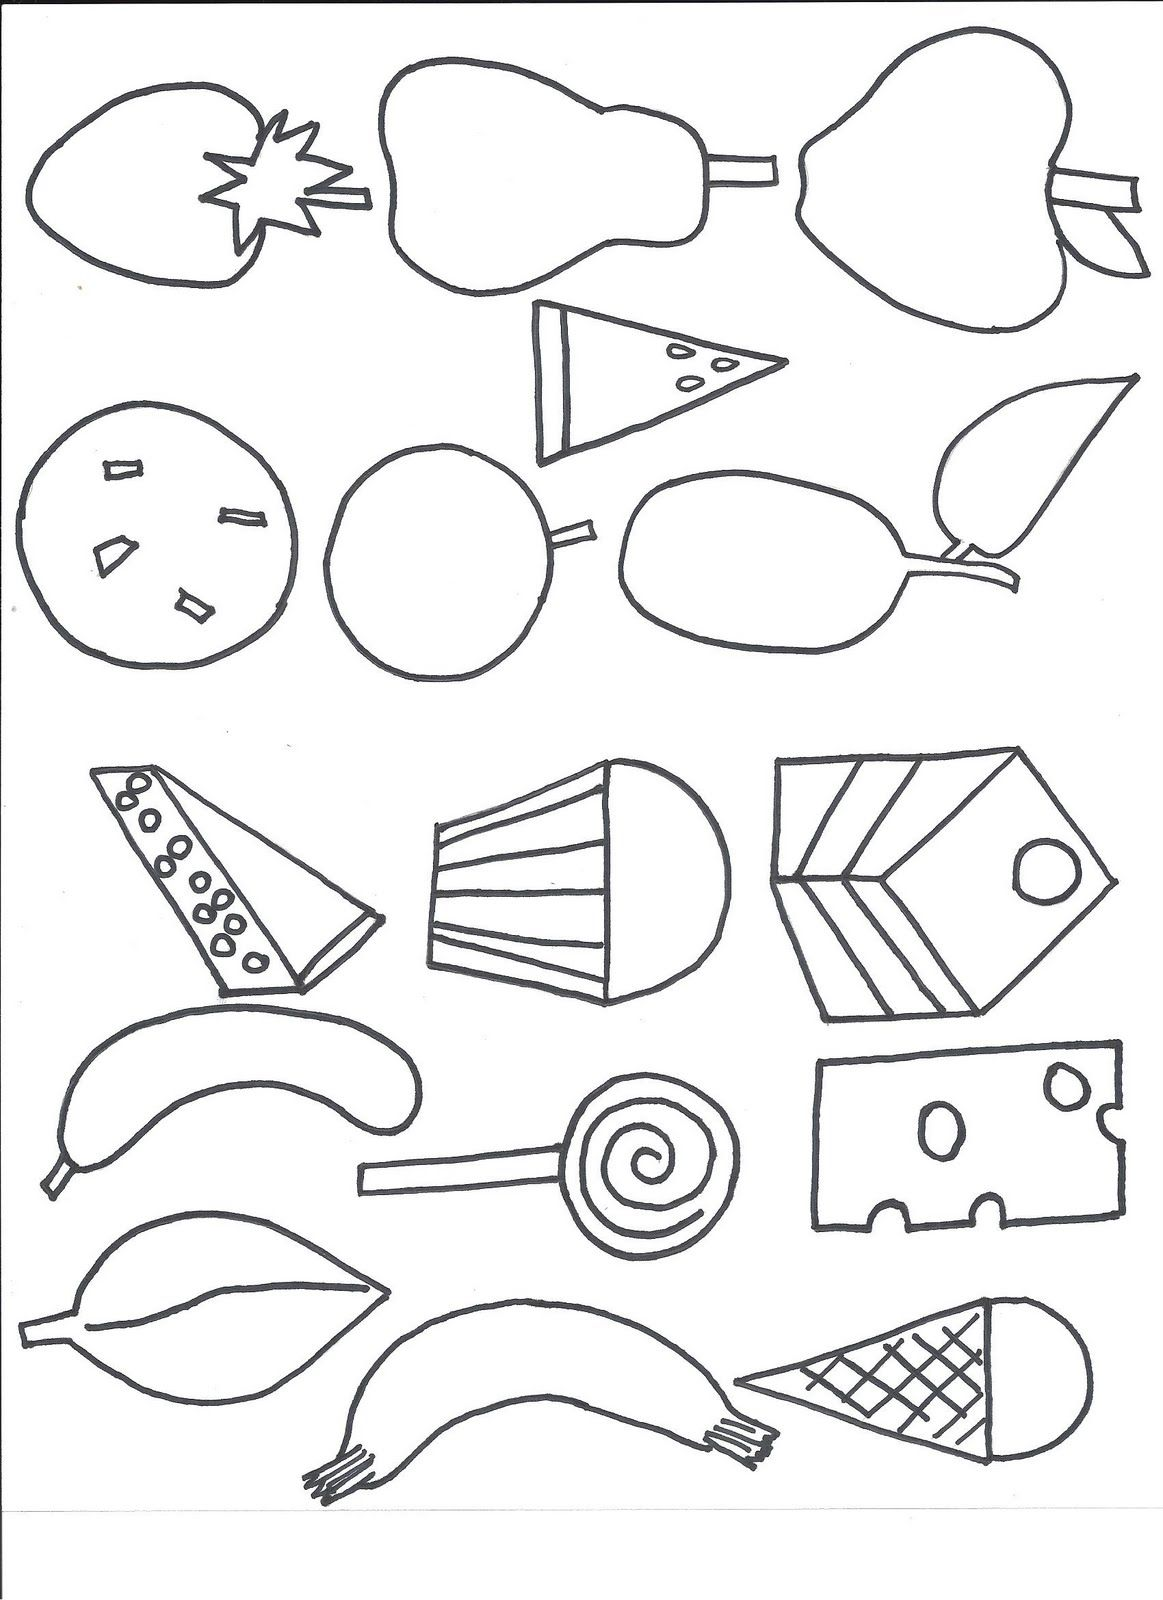 **Please note, all these templates are available on my